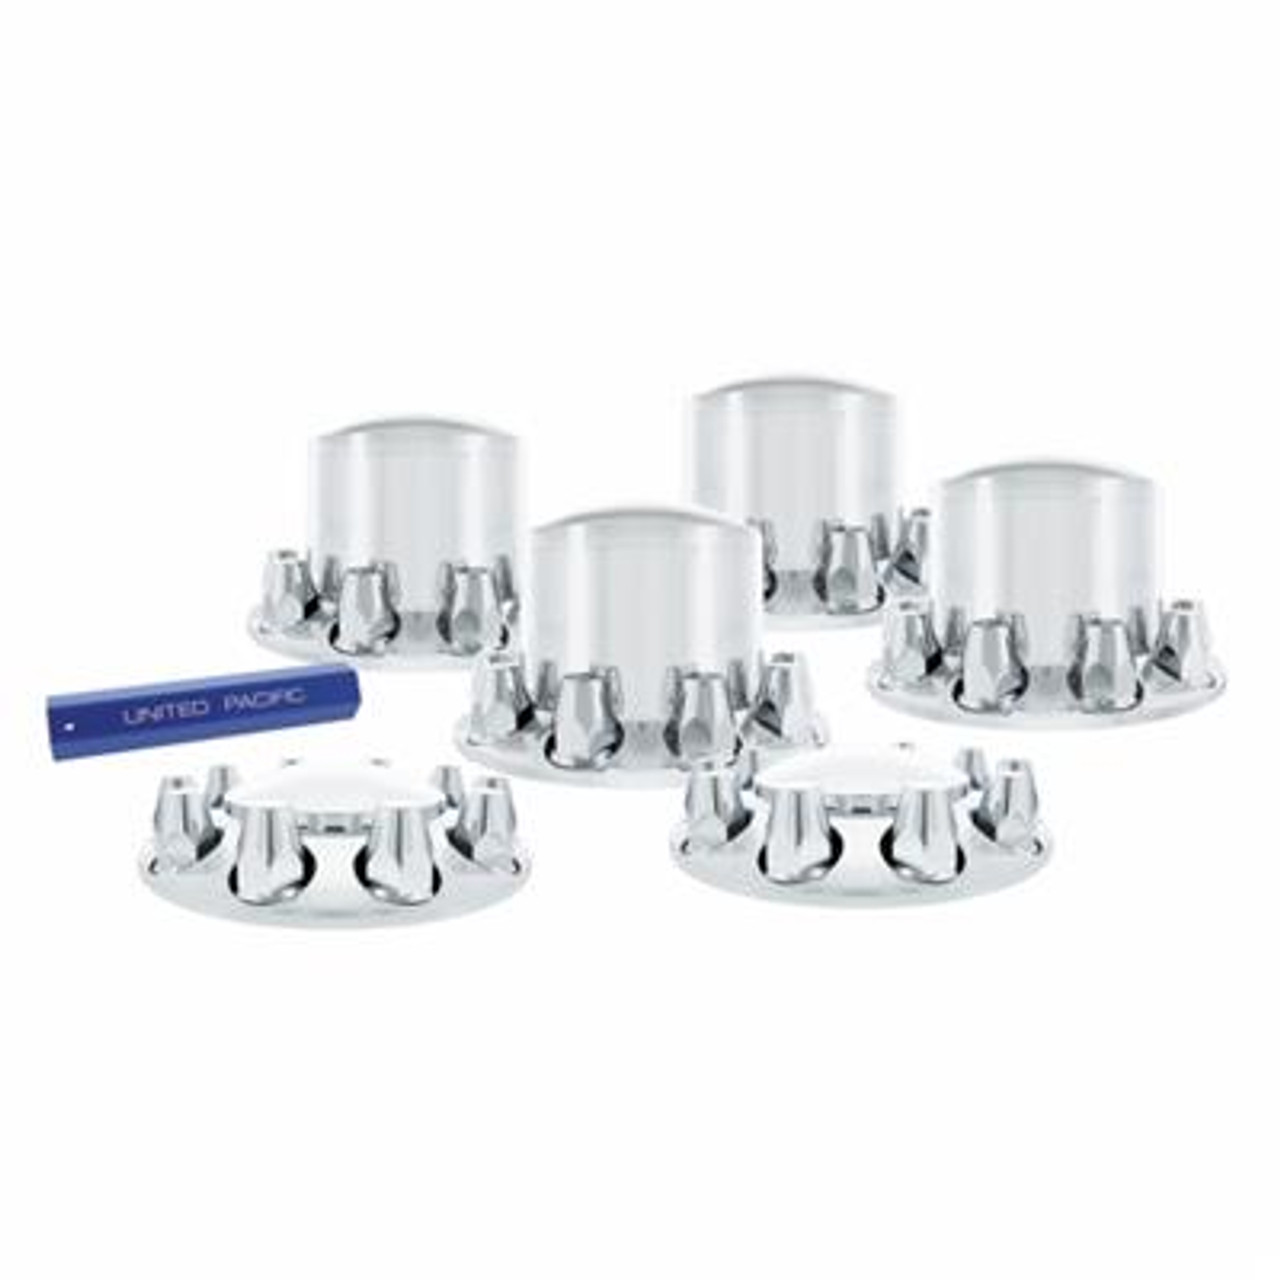 33mm Chrome dome axle kit w/standard nut covers - Thread on